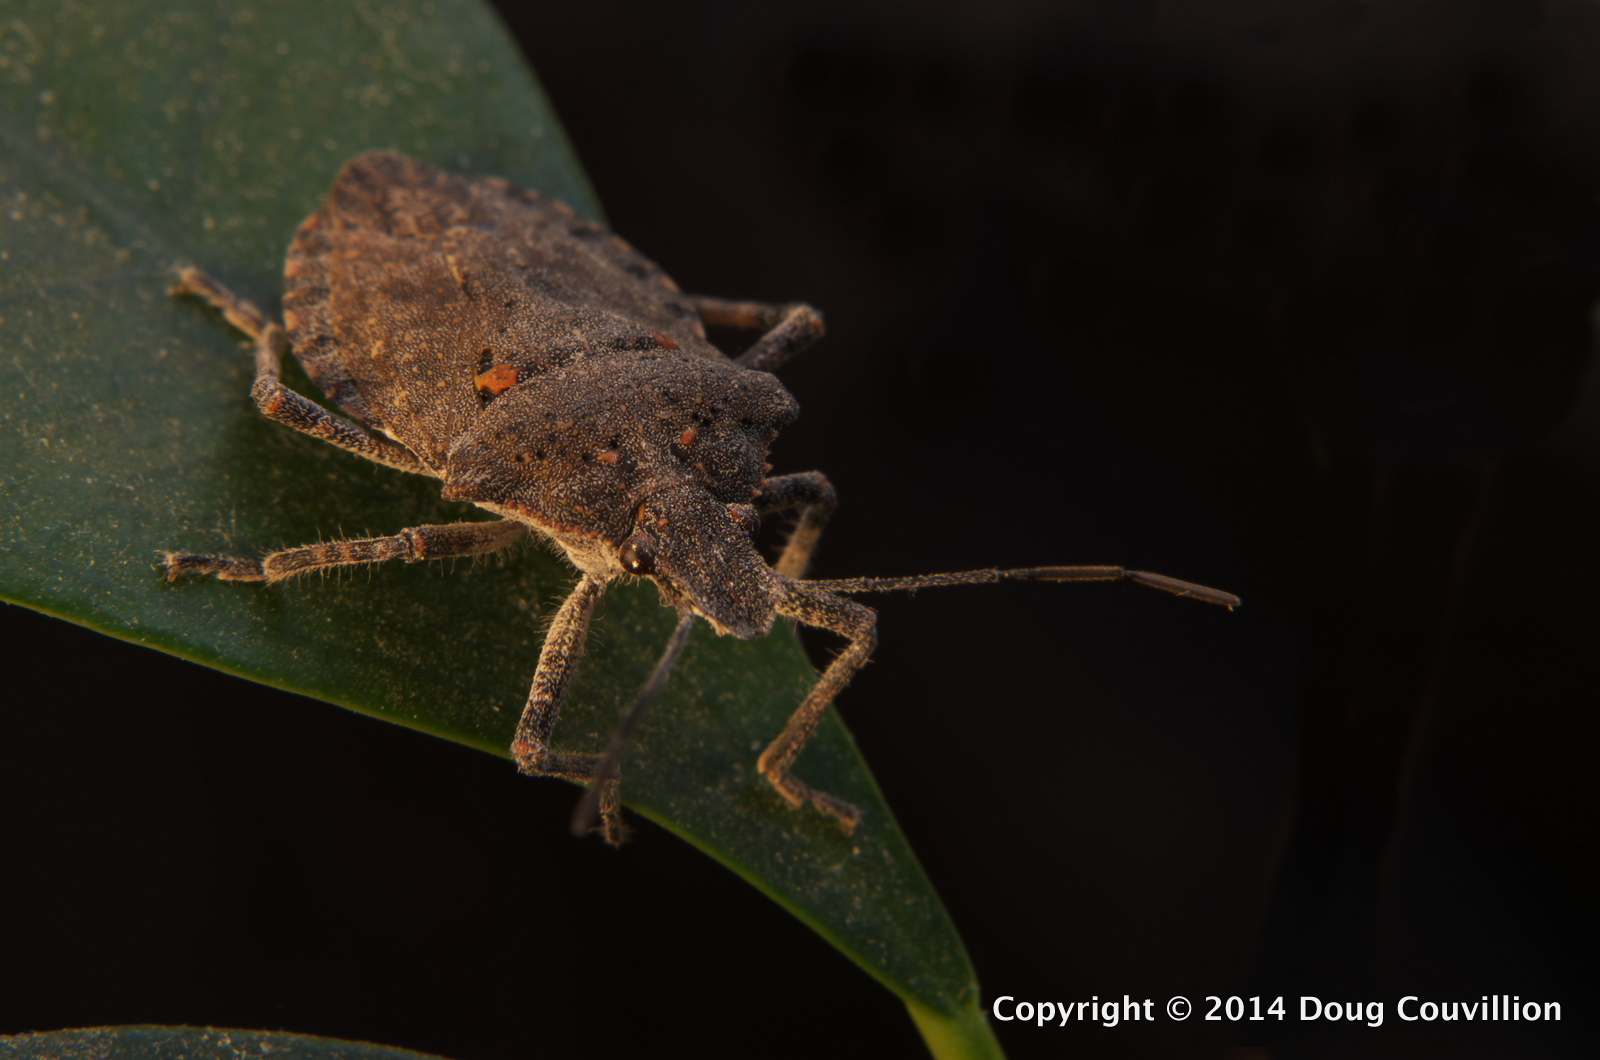 macro photograph of Brochymena arborea, rough stink bug, on a ficus leaf